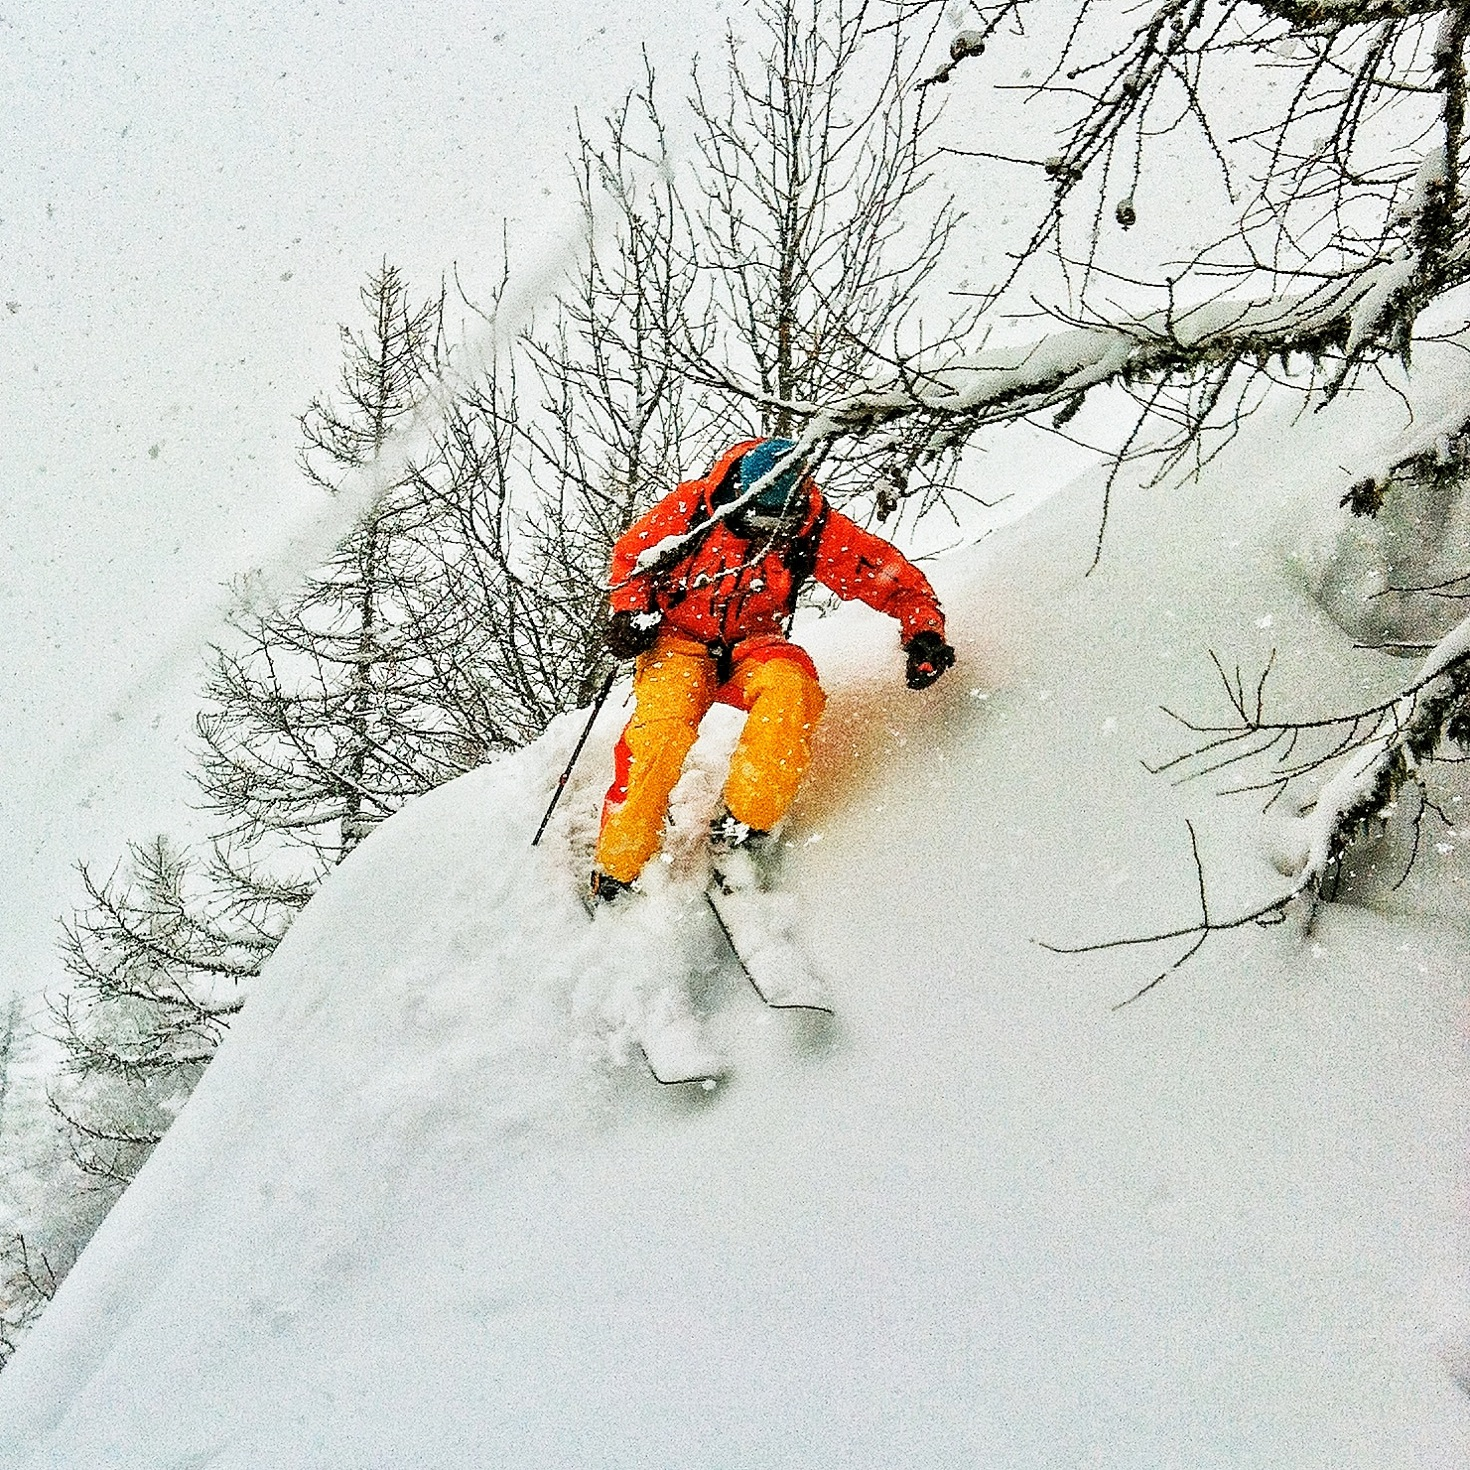 In the trees at Grands Montets